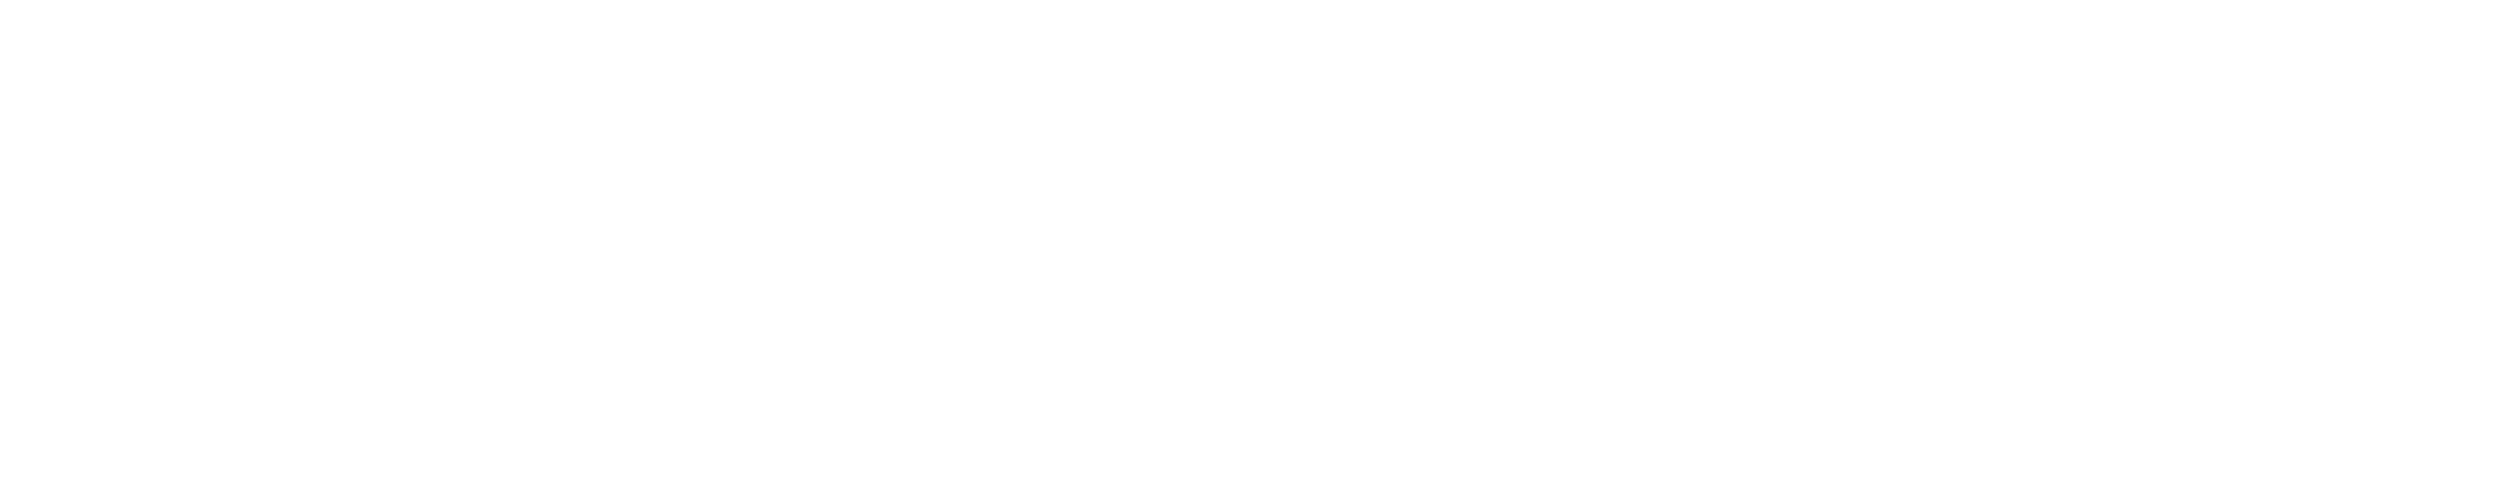 Housecheckr